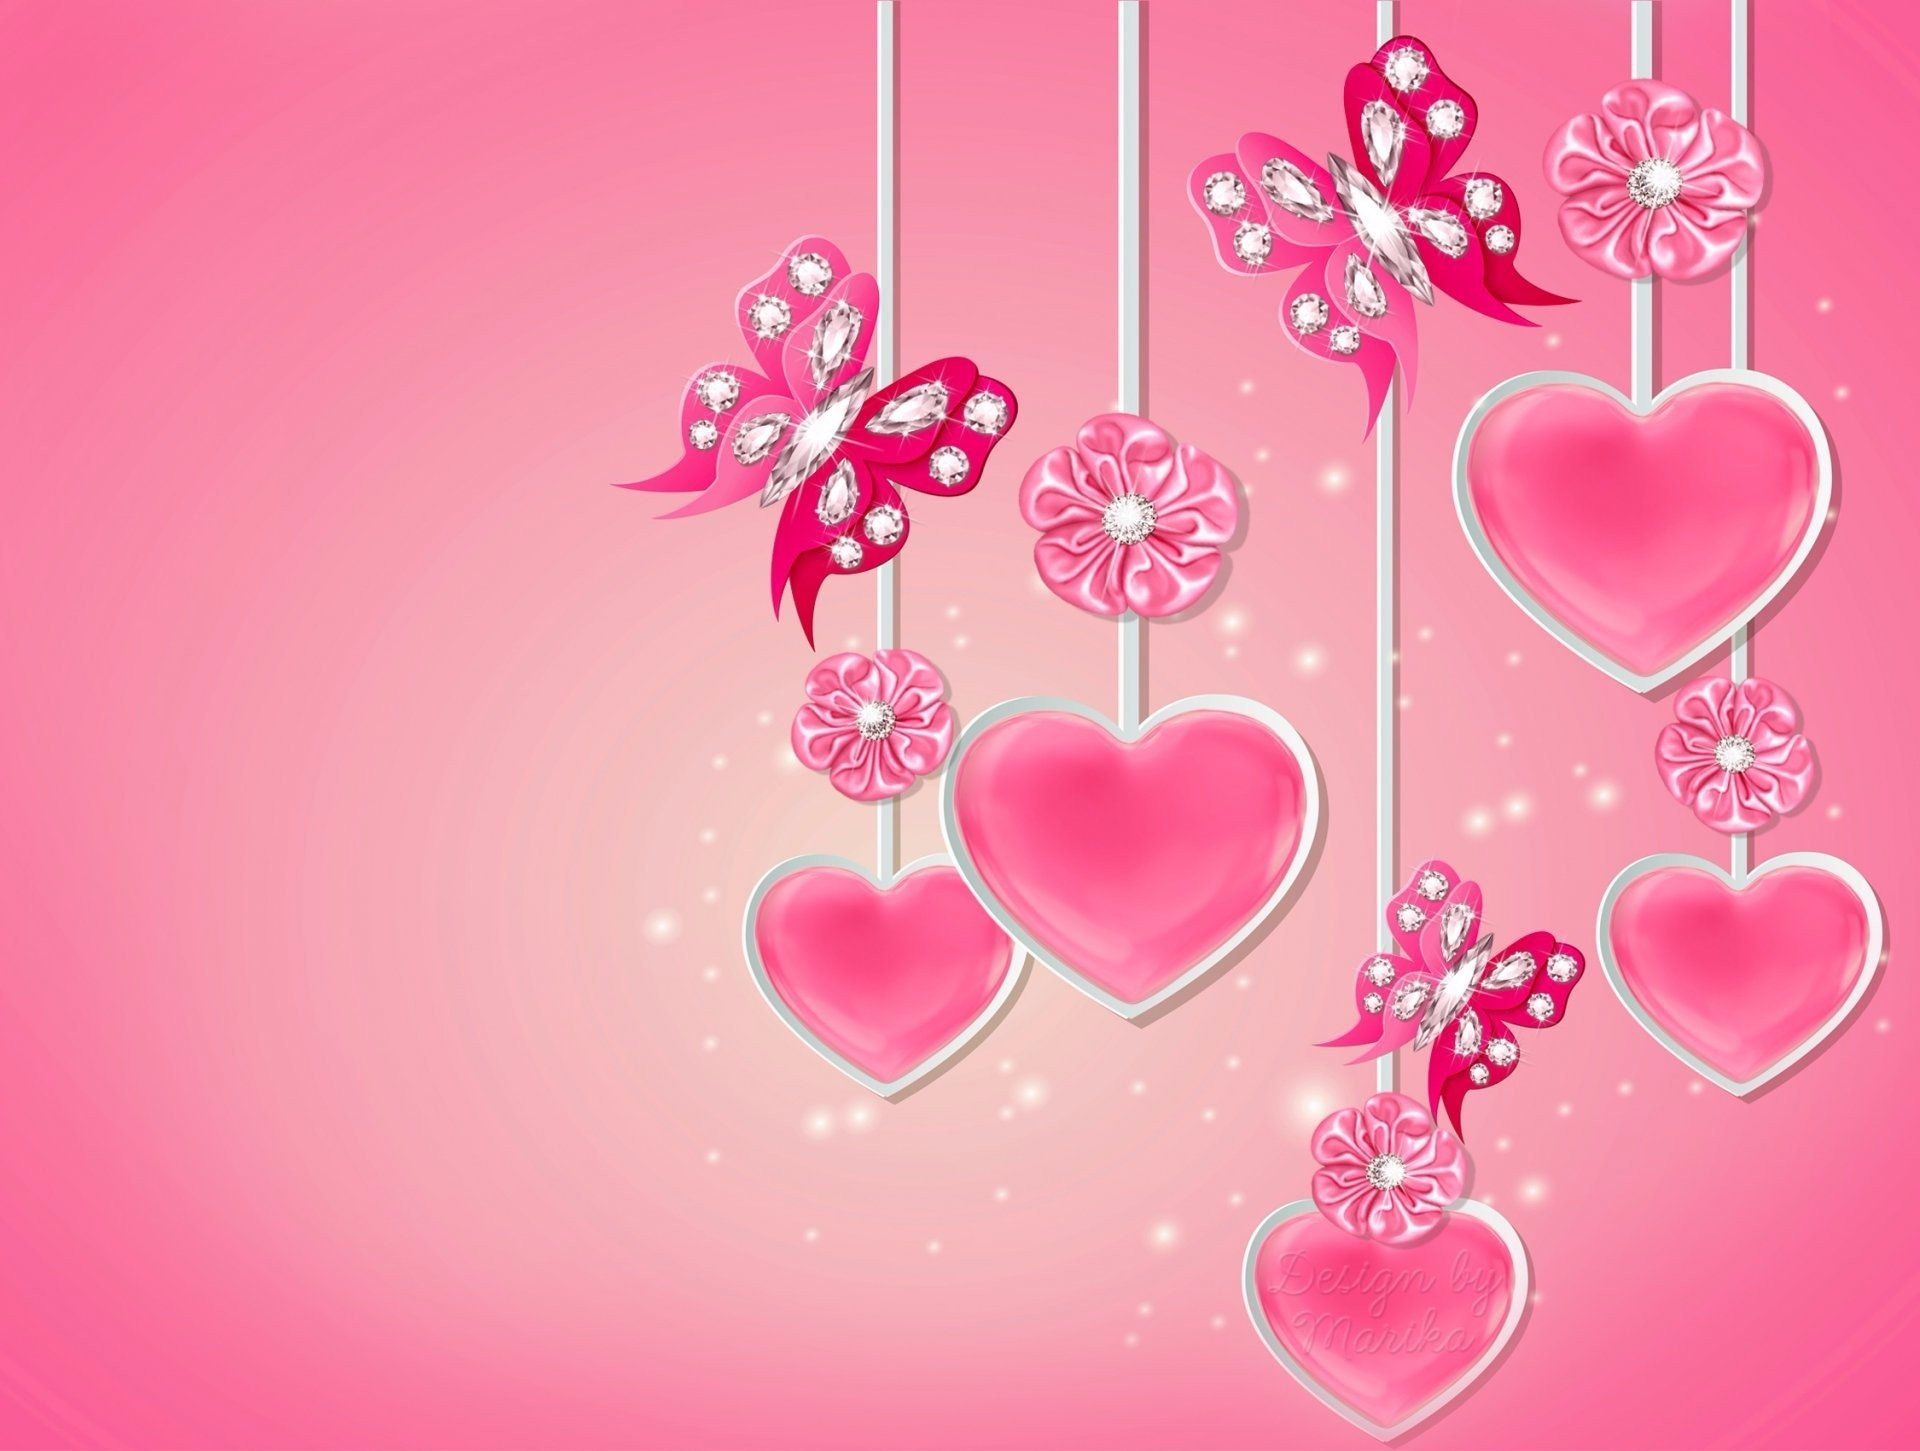 Pink Hearts And Butterflies Hd Wallpaper Background Image